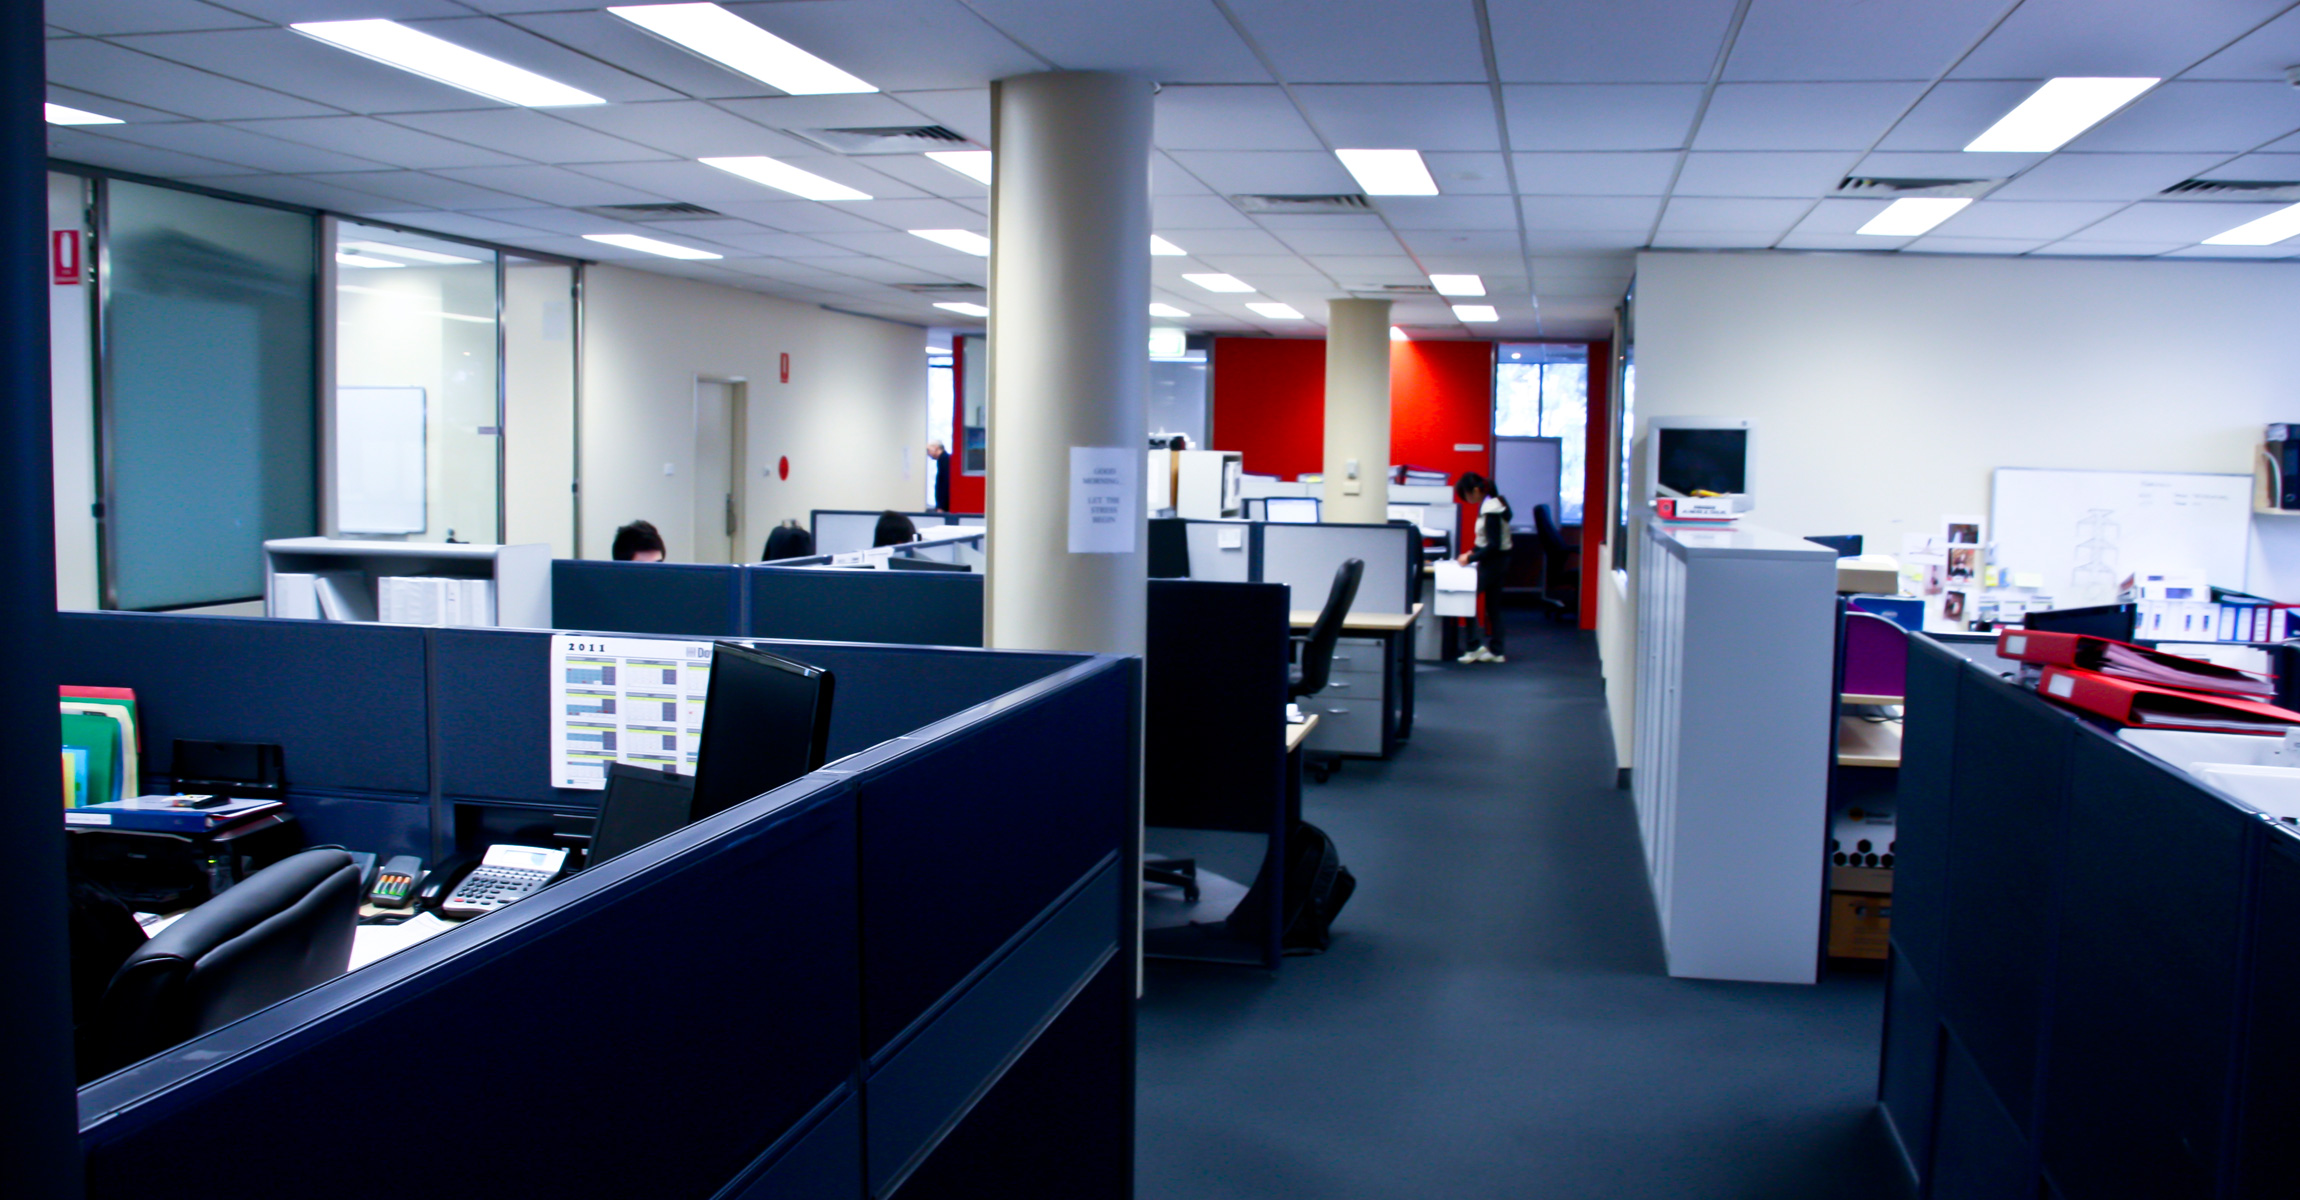 Downer edi office fitout ckj building services for Office fit out